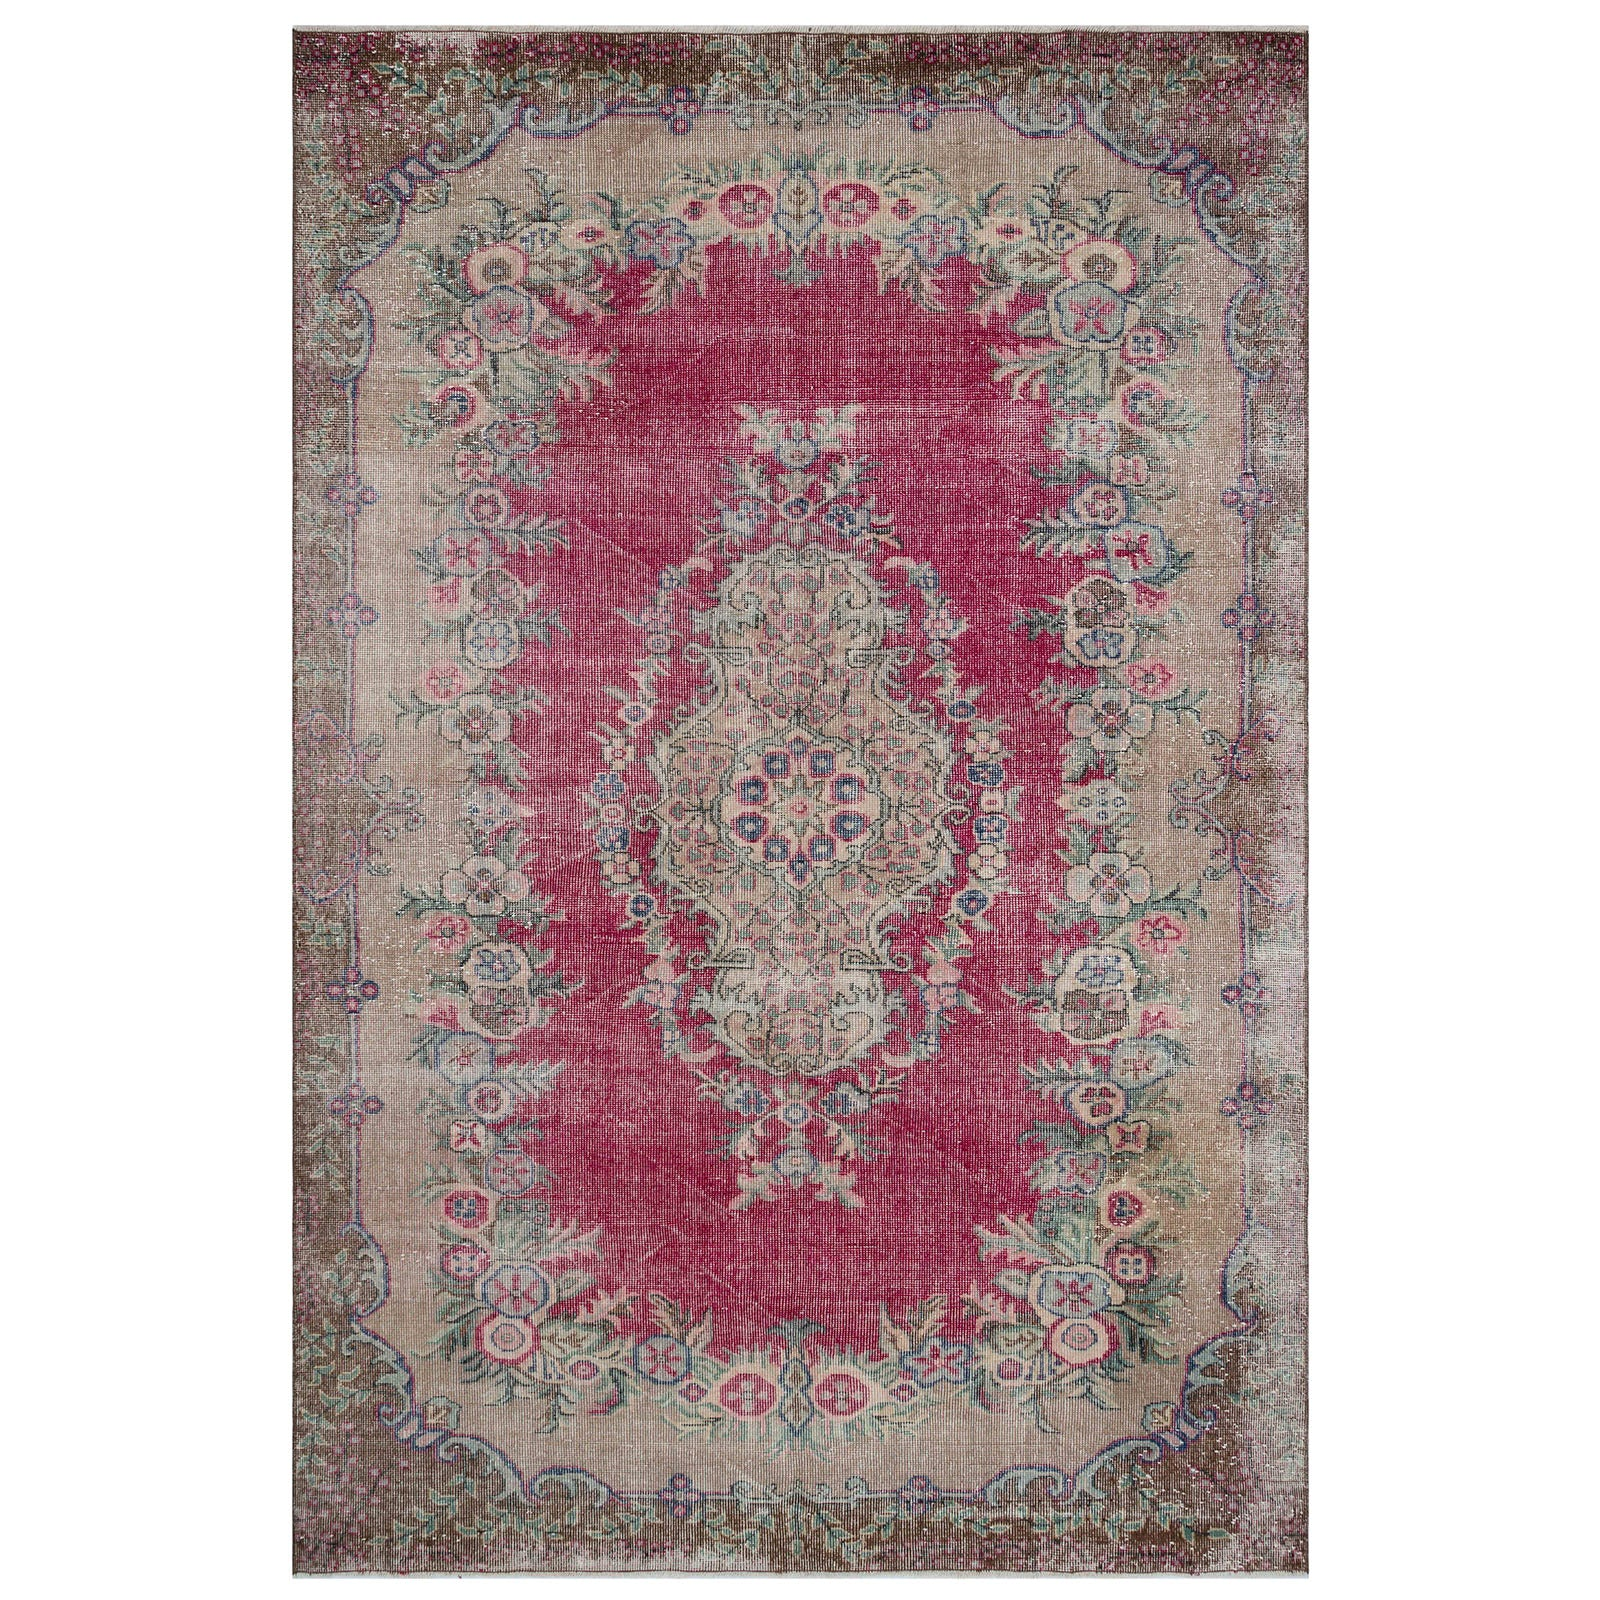 Hali 191X285 CM Bursa Handmade over dyed rug 1673